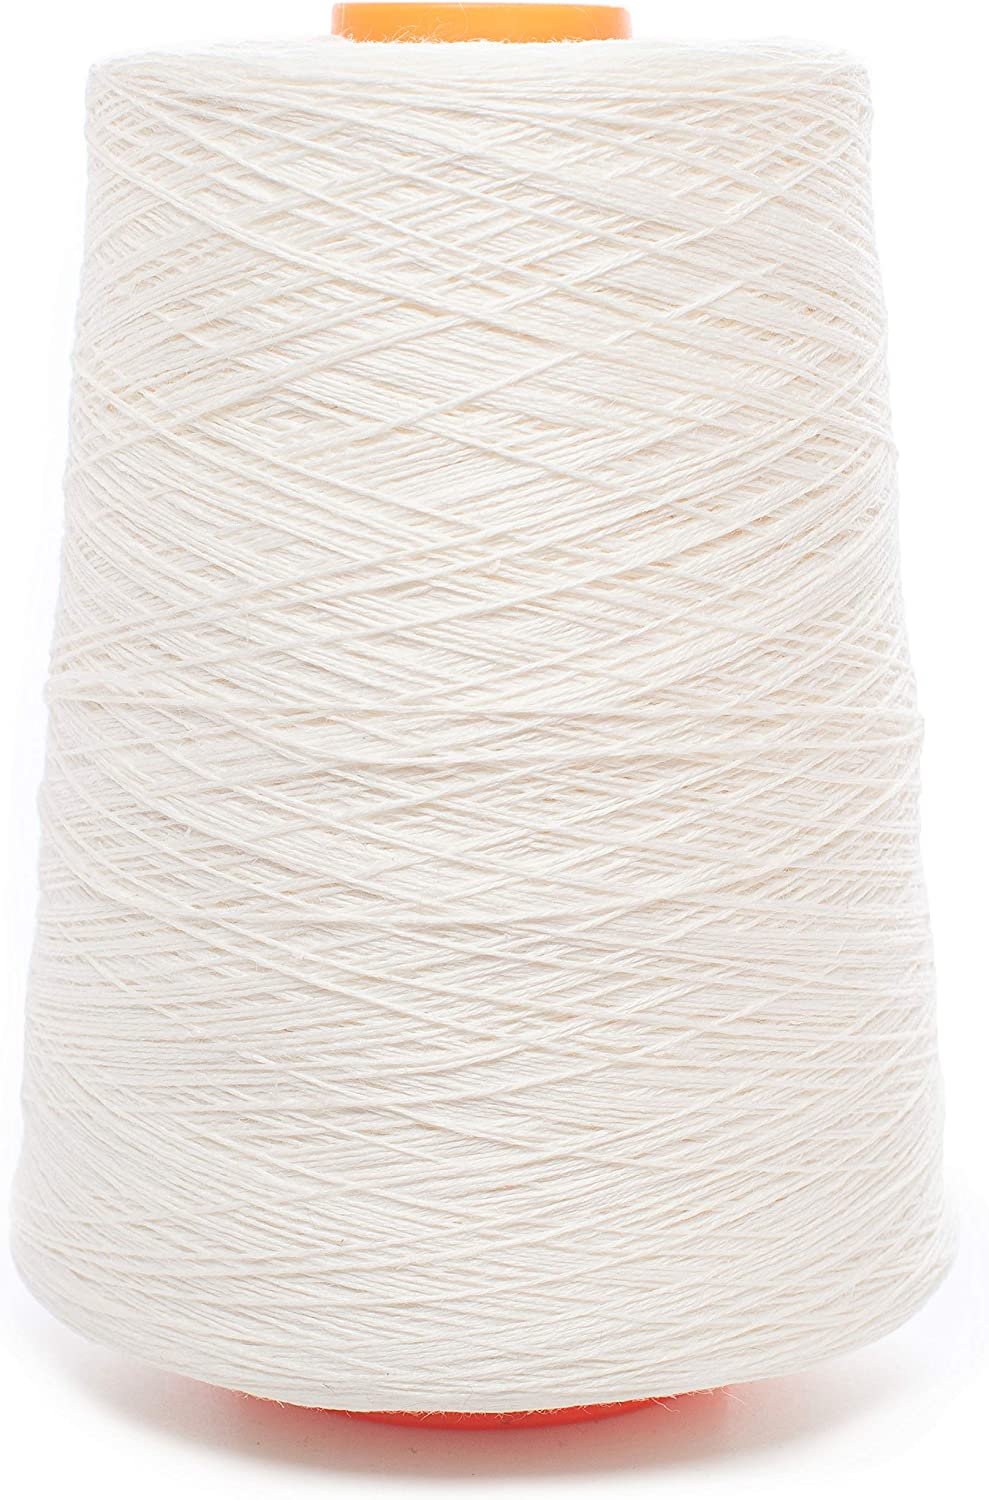 Linen Yarn Cone  100% Flax Linen  1 LBS  Bright White  3 PLY  Sewing Weaving Crochet Embroidering  3.000 Yard